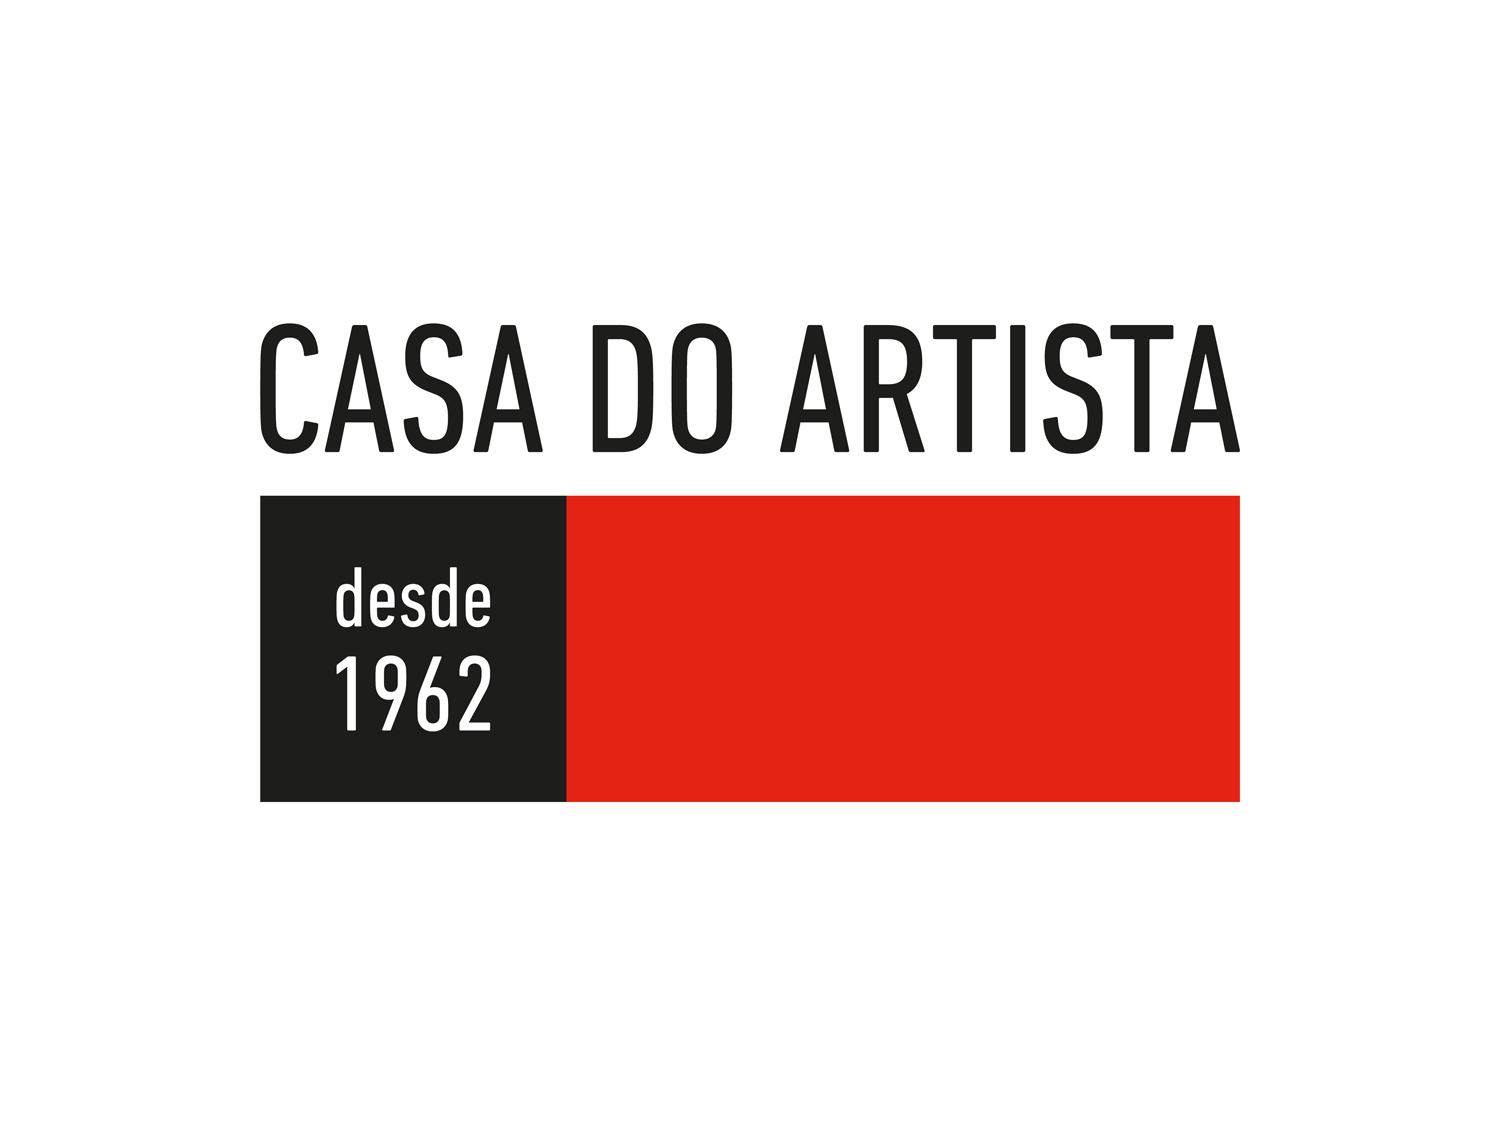 CASA DO ARTISTA | LOGO HORIZONTAL